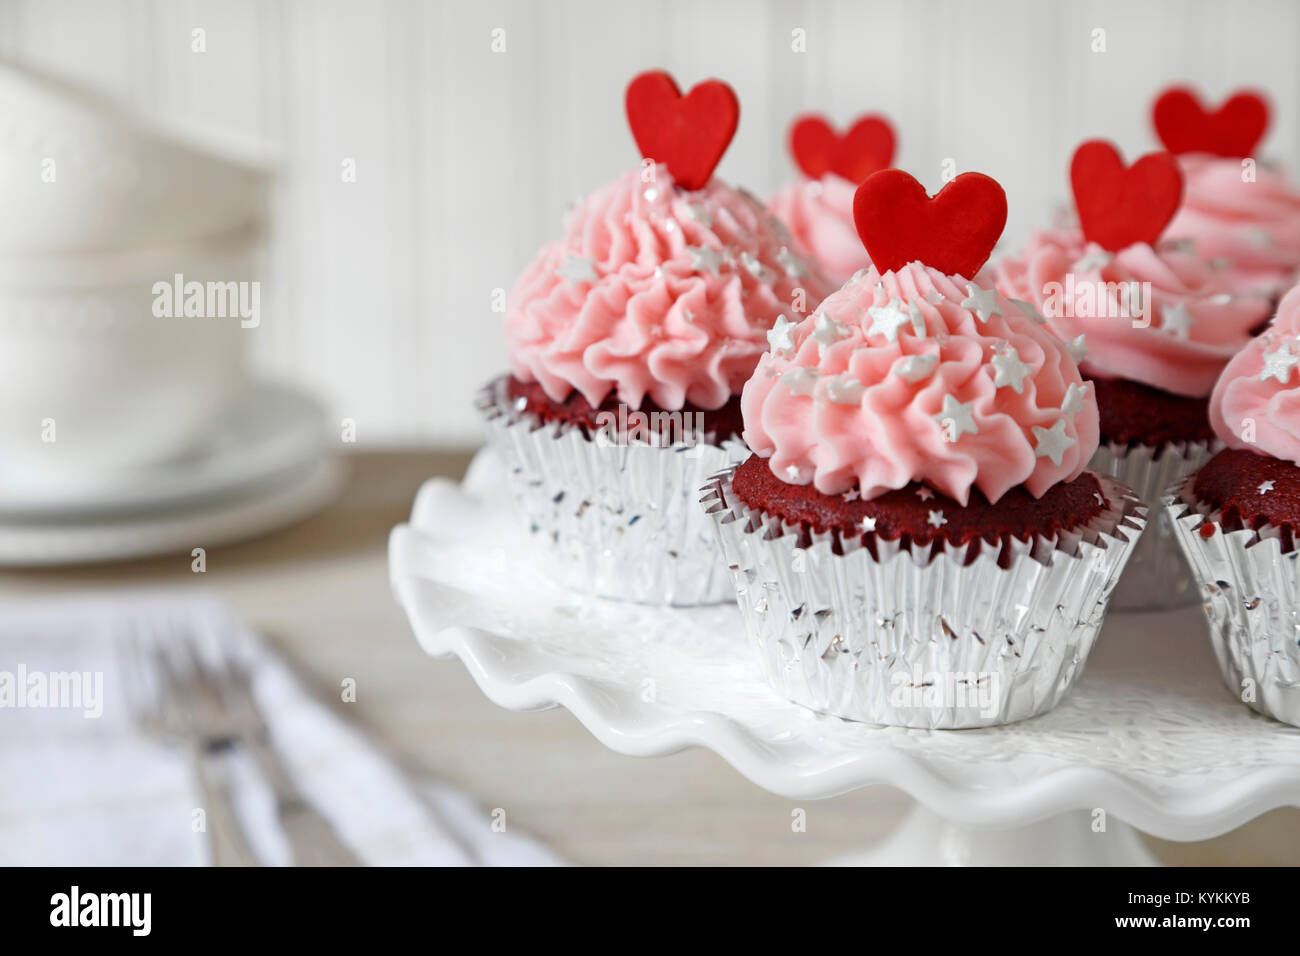 Cupcakes. Red velvet cupcakes decorated with red hearts Stock Photo